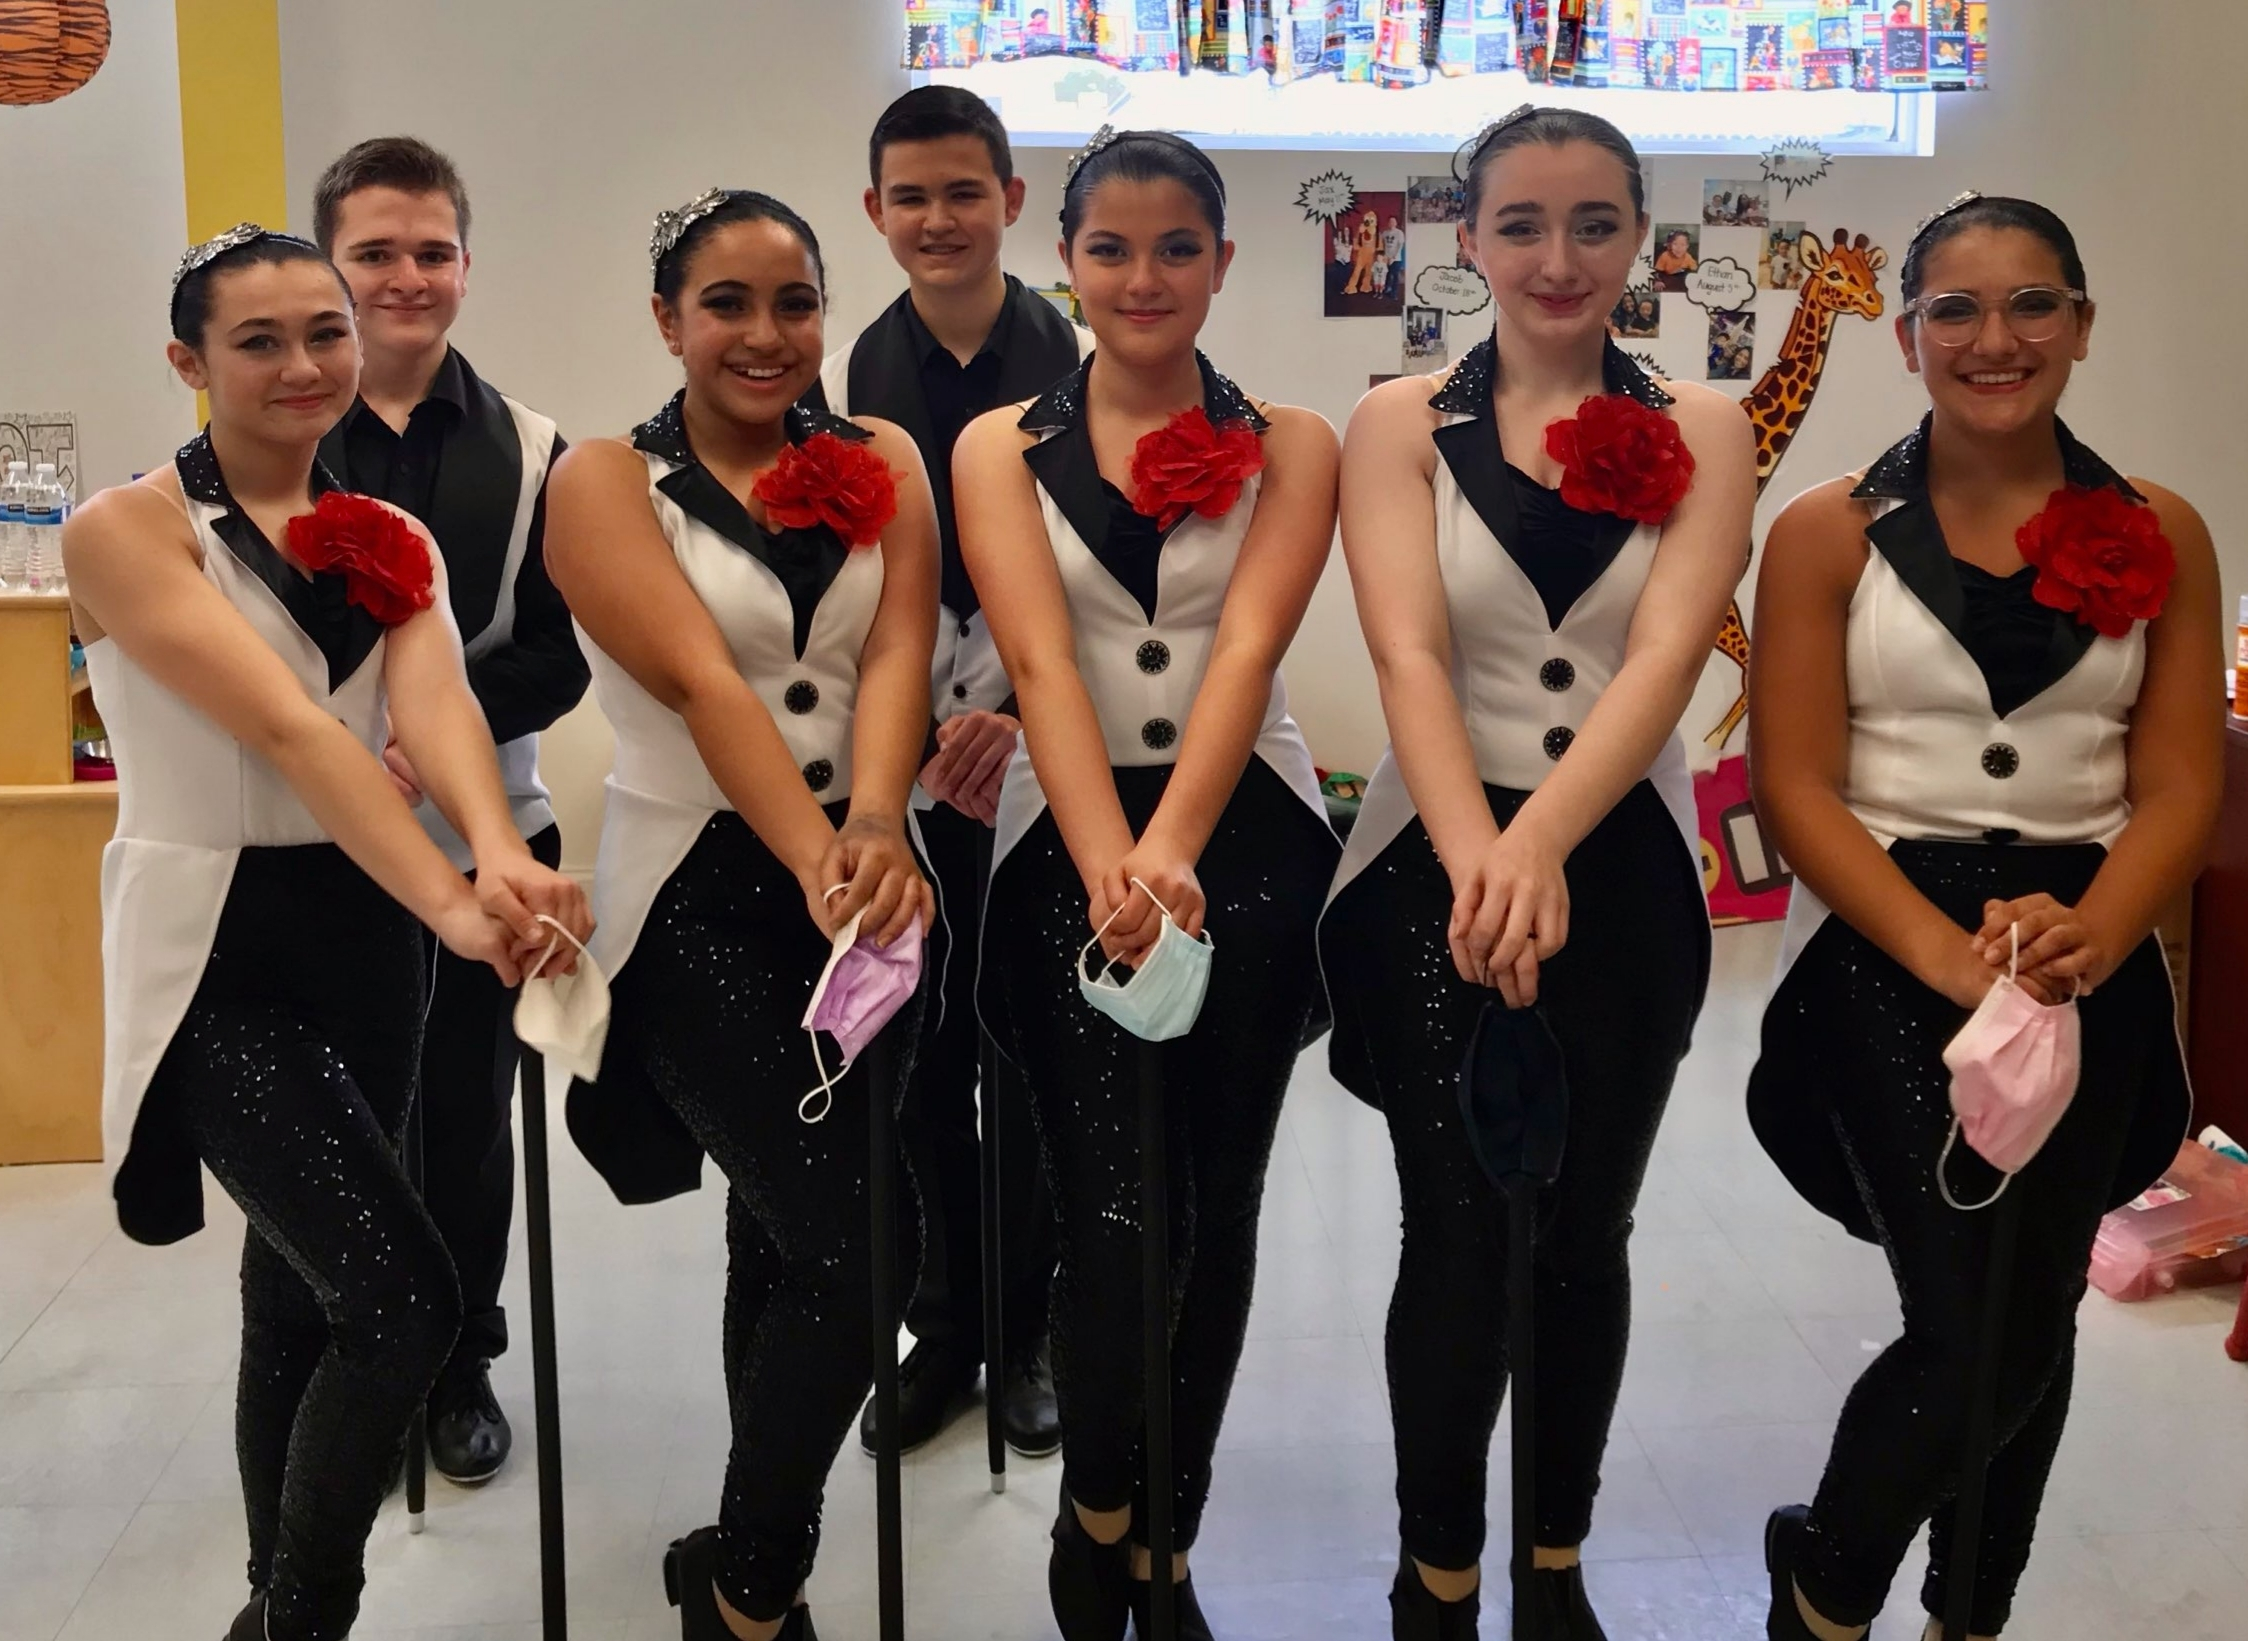 Members of the Our Lady of the Hamptons senior tap team readied for competition last week in Southampton. Photo courtesy of OLH.